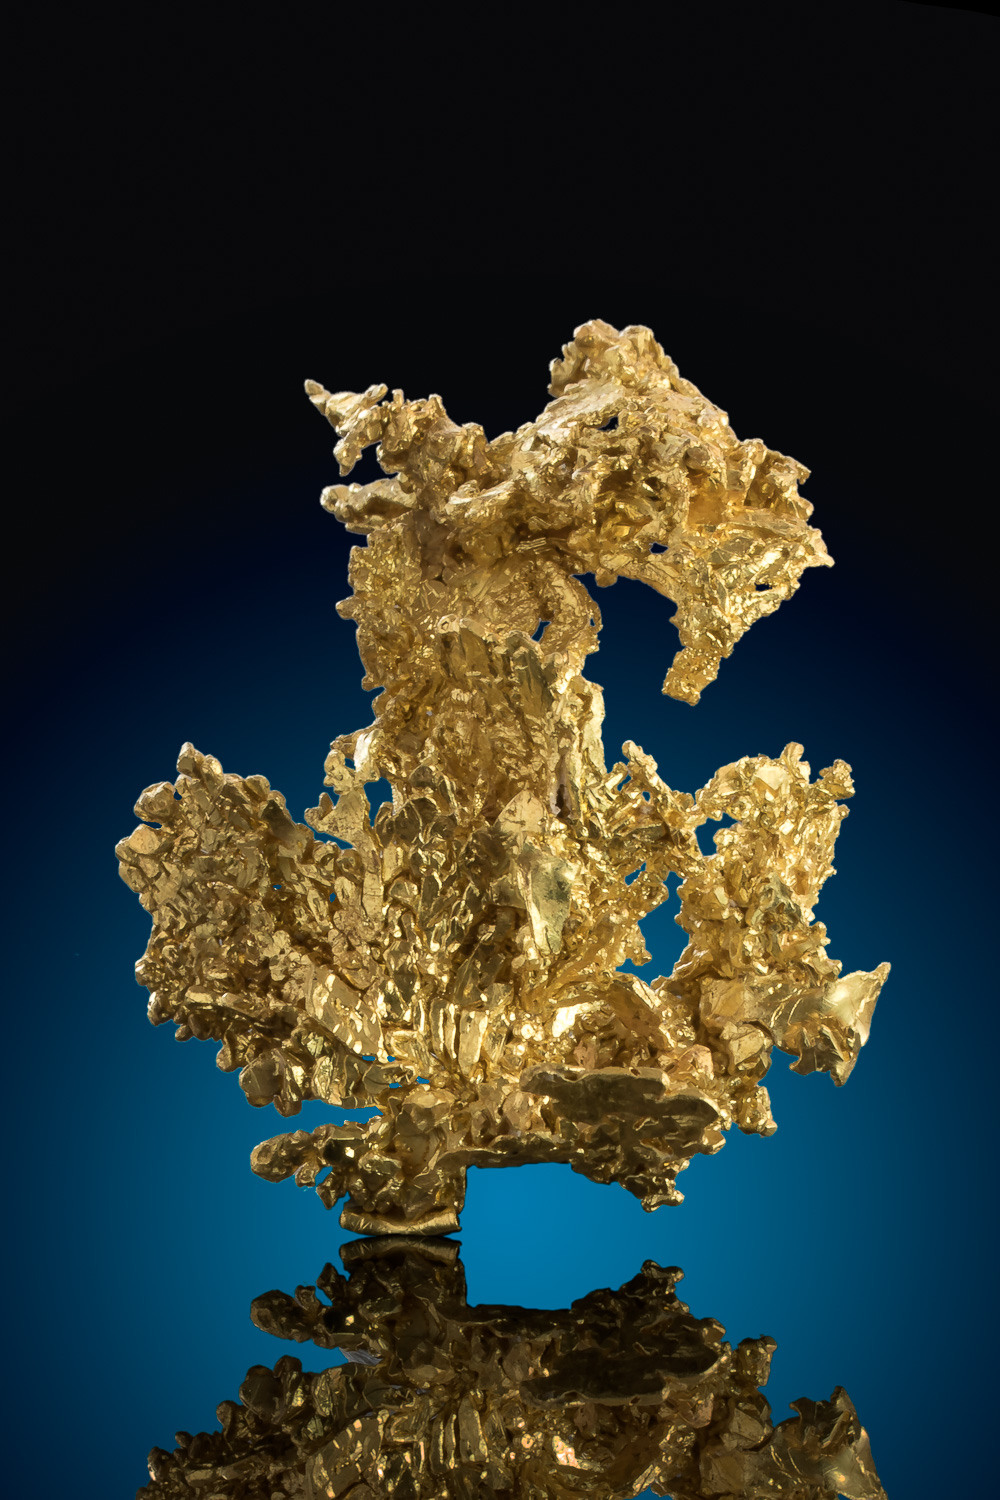 """The Dragon"" Magnificent Gold Specimen from the Eagles Nest Mine"